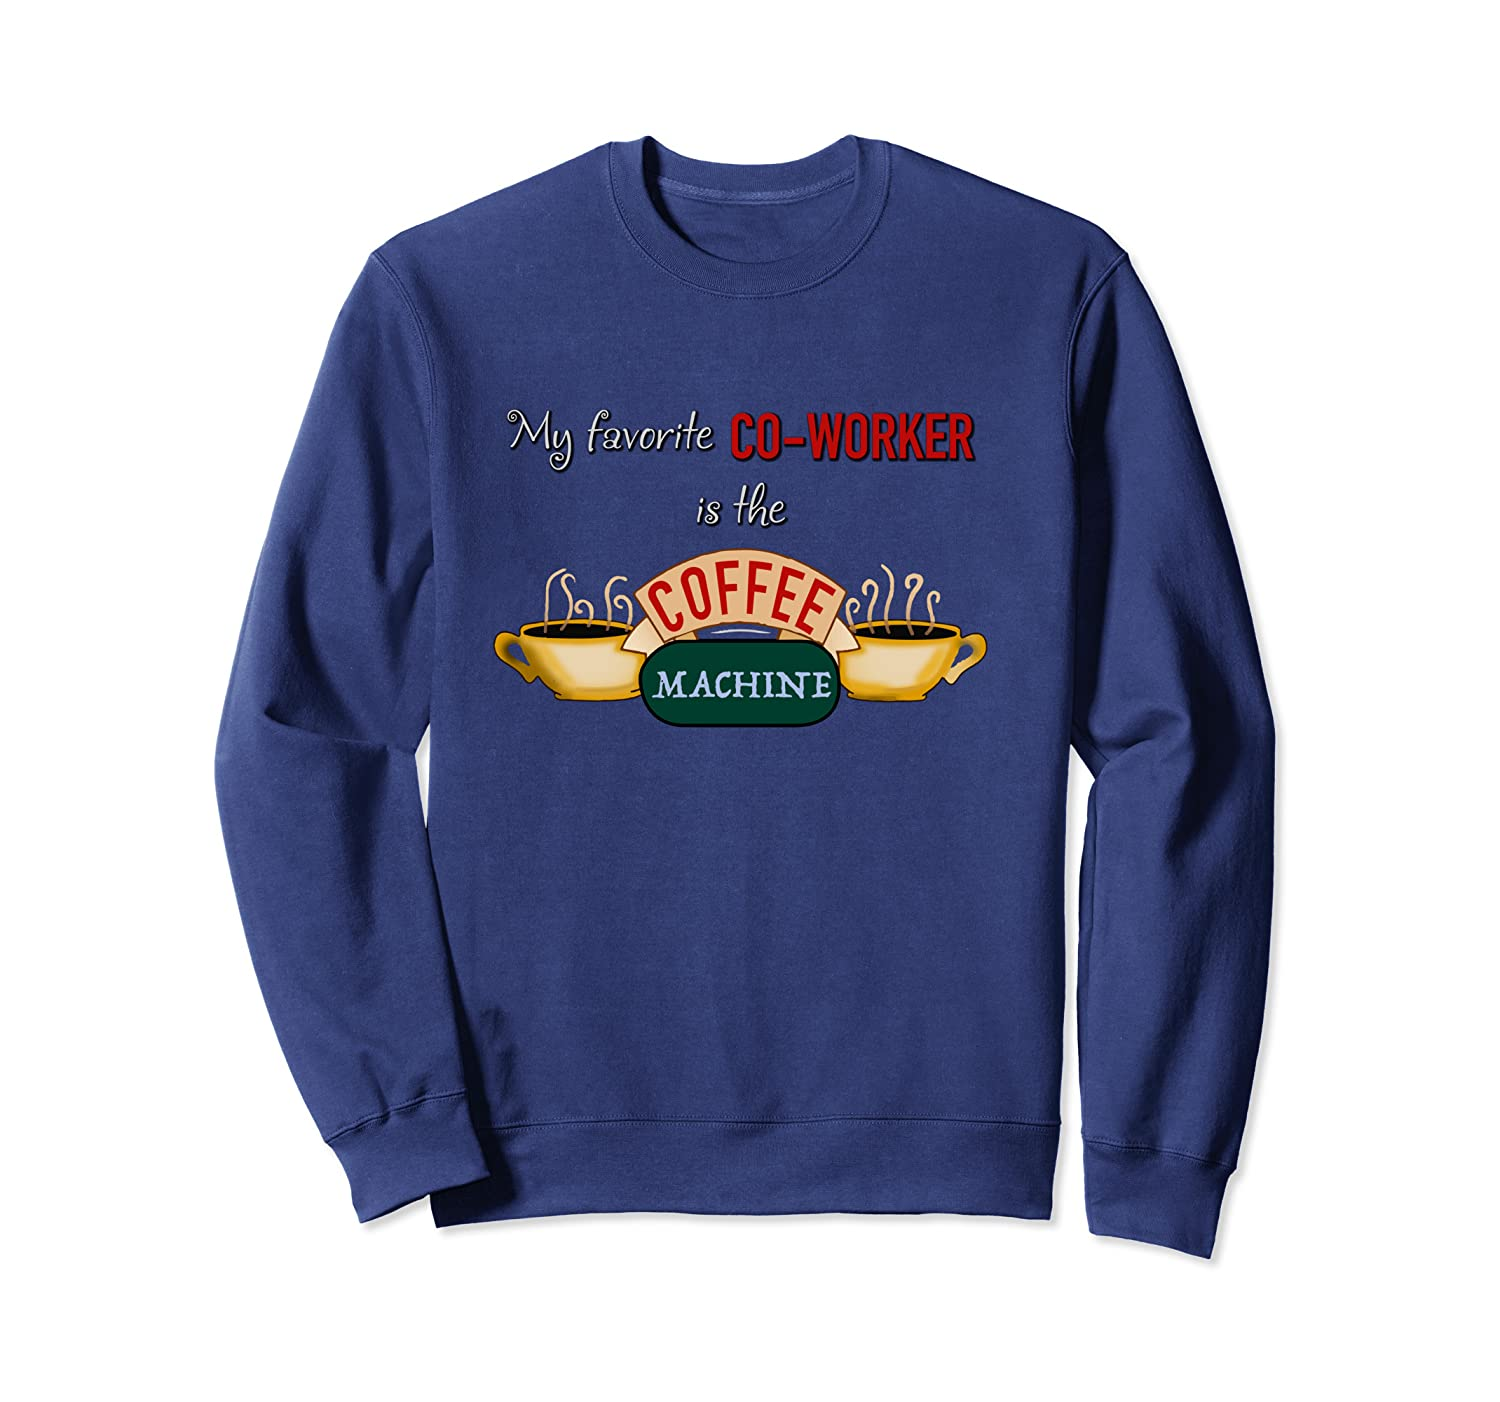 """My Favorite Co-worker is the Coffee Machine"" Funny Friends Sweatshirt Unisex Tshirt"